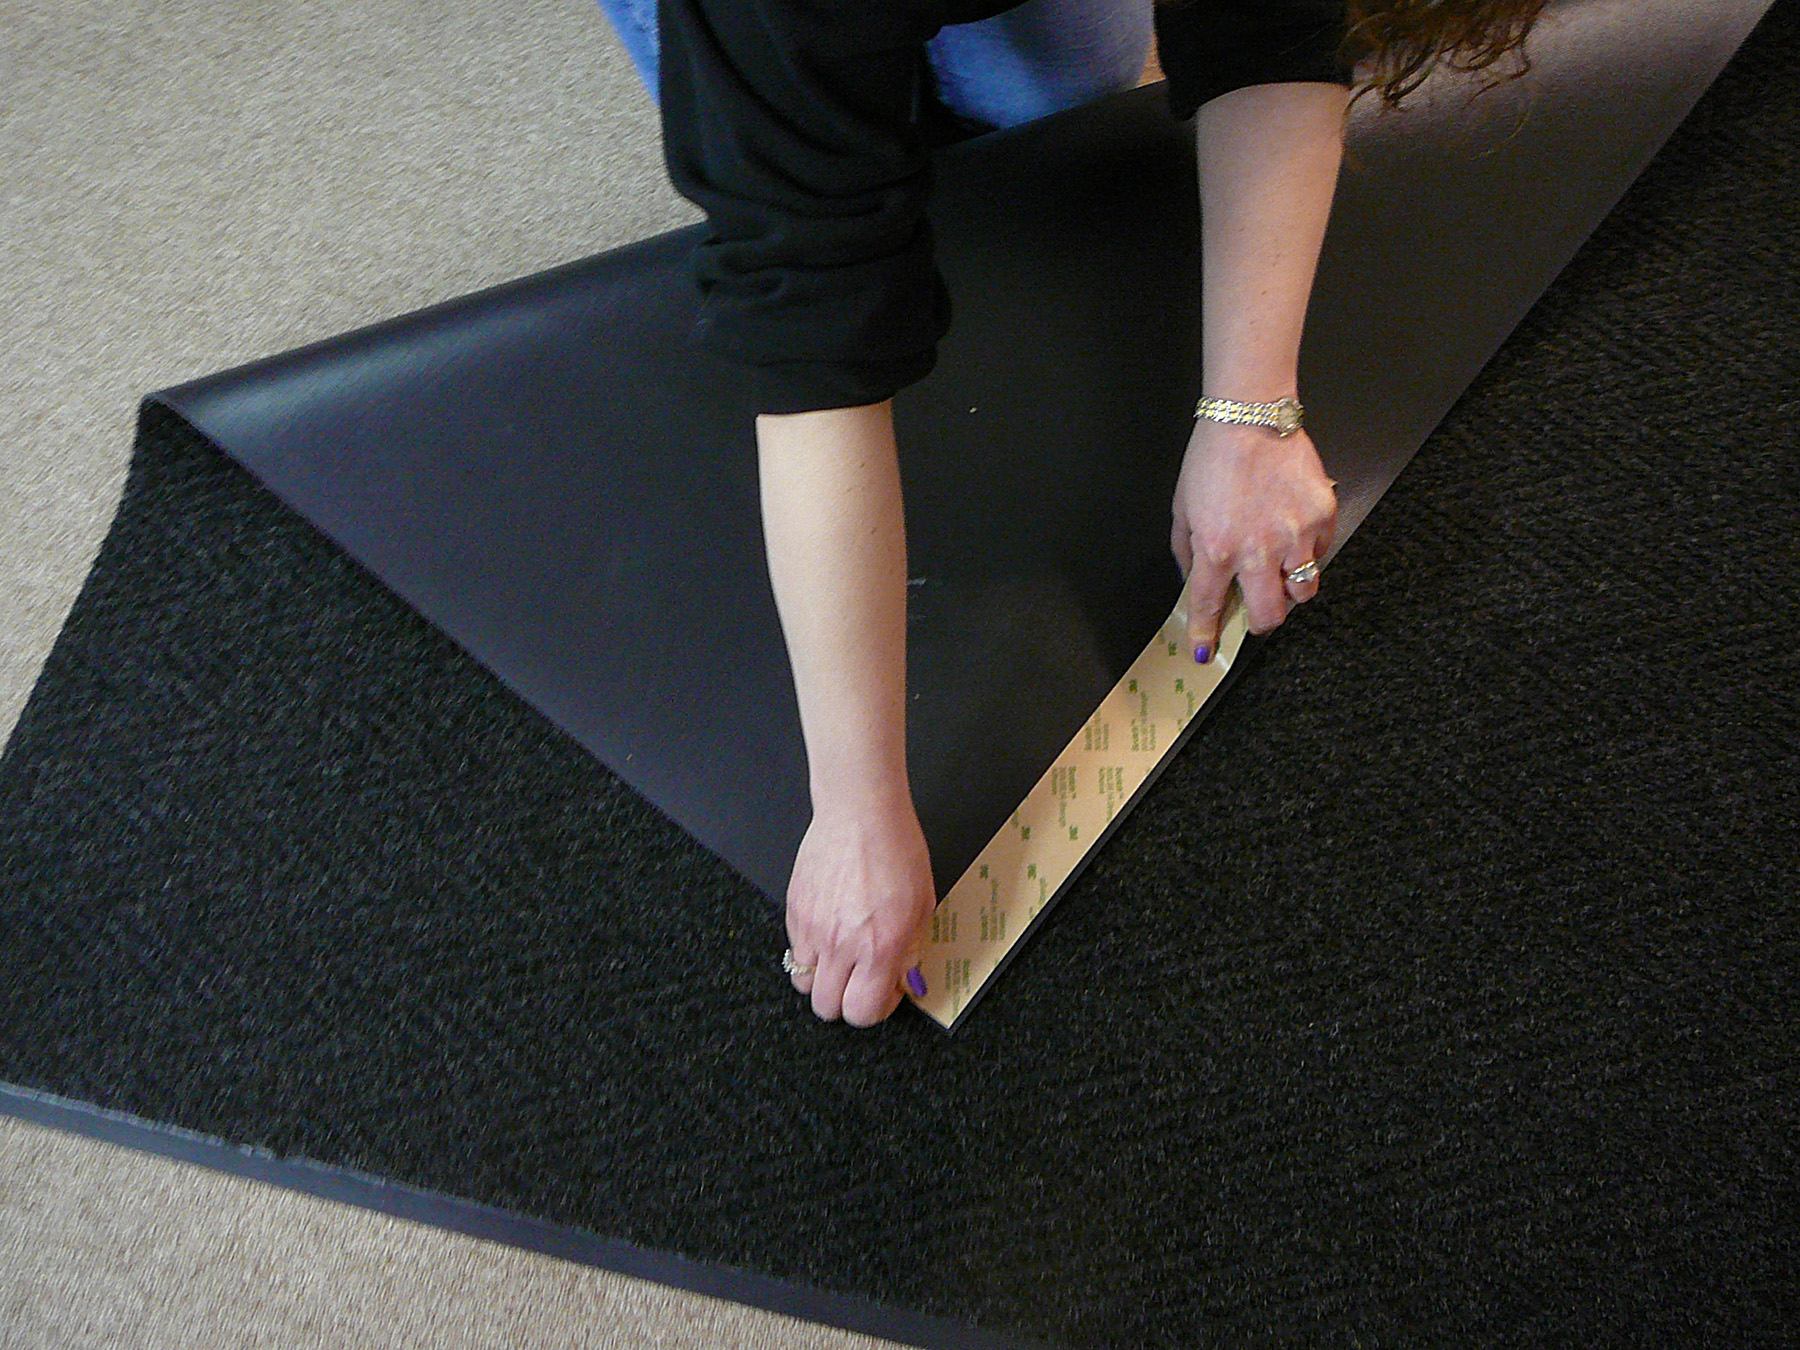 Stay In Place Matting Tapelied To The Vinyl Backing Of Floor Mats Tape Secures Interior Hard Floors Or Loop Piled Carpets